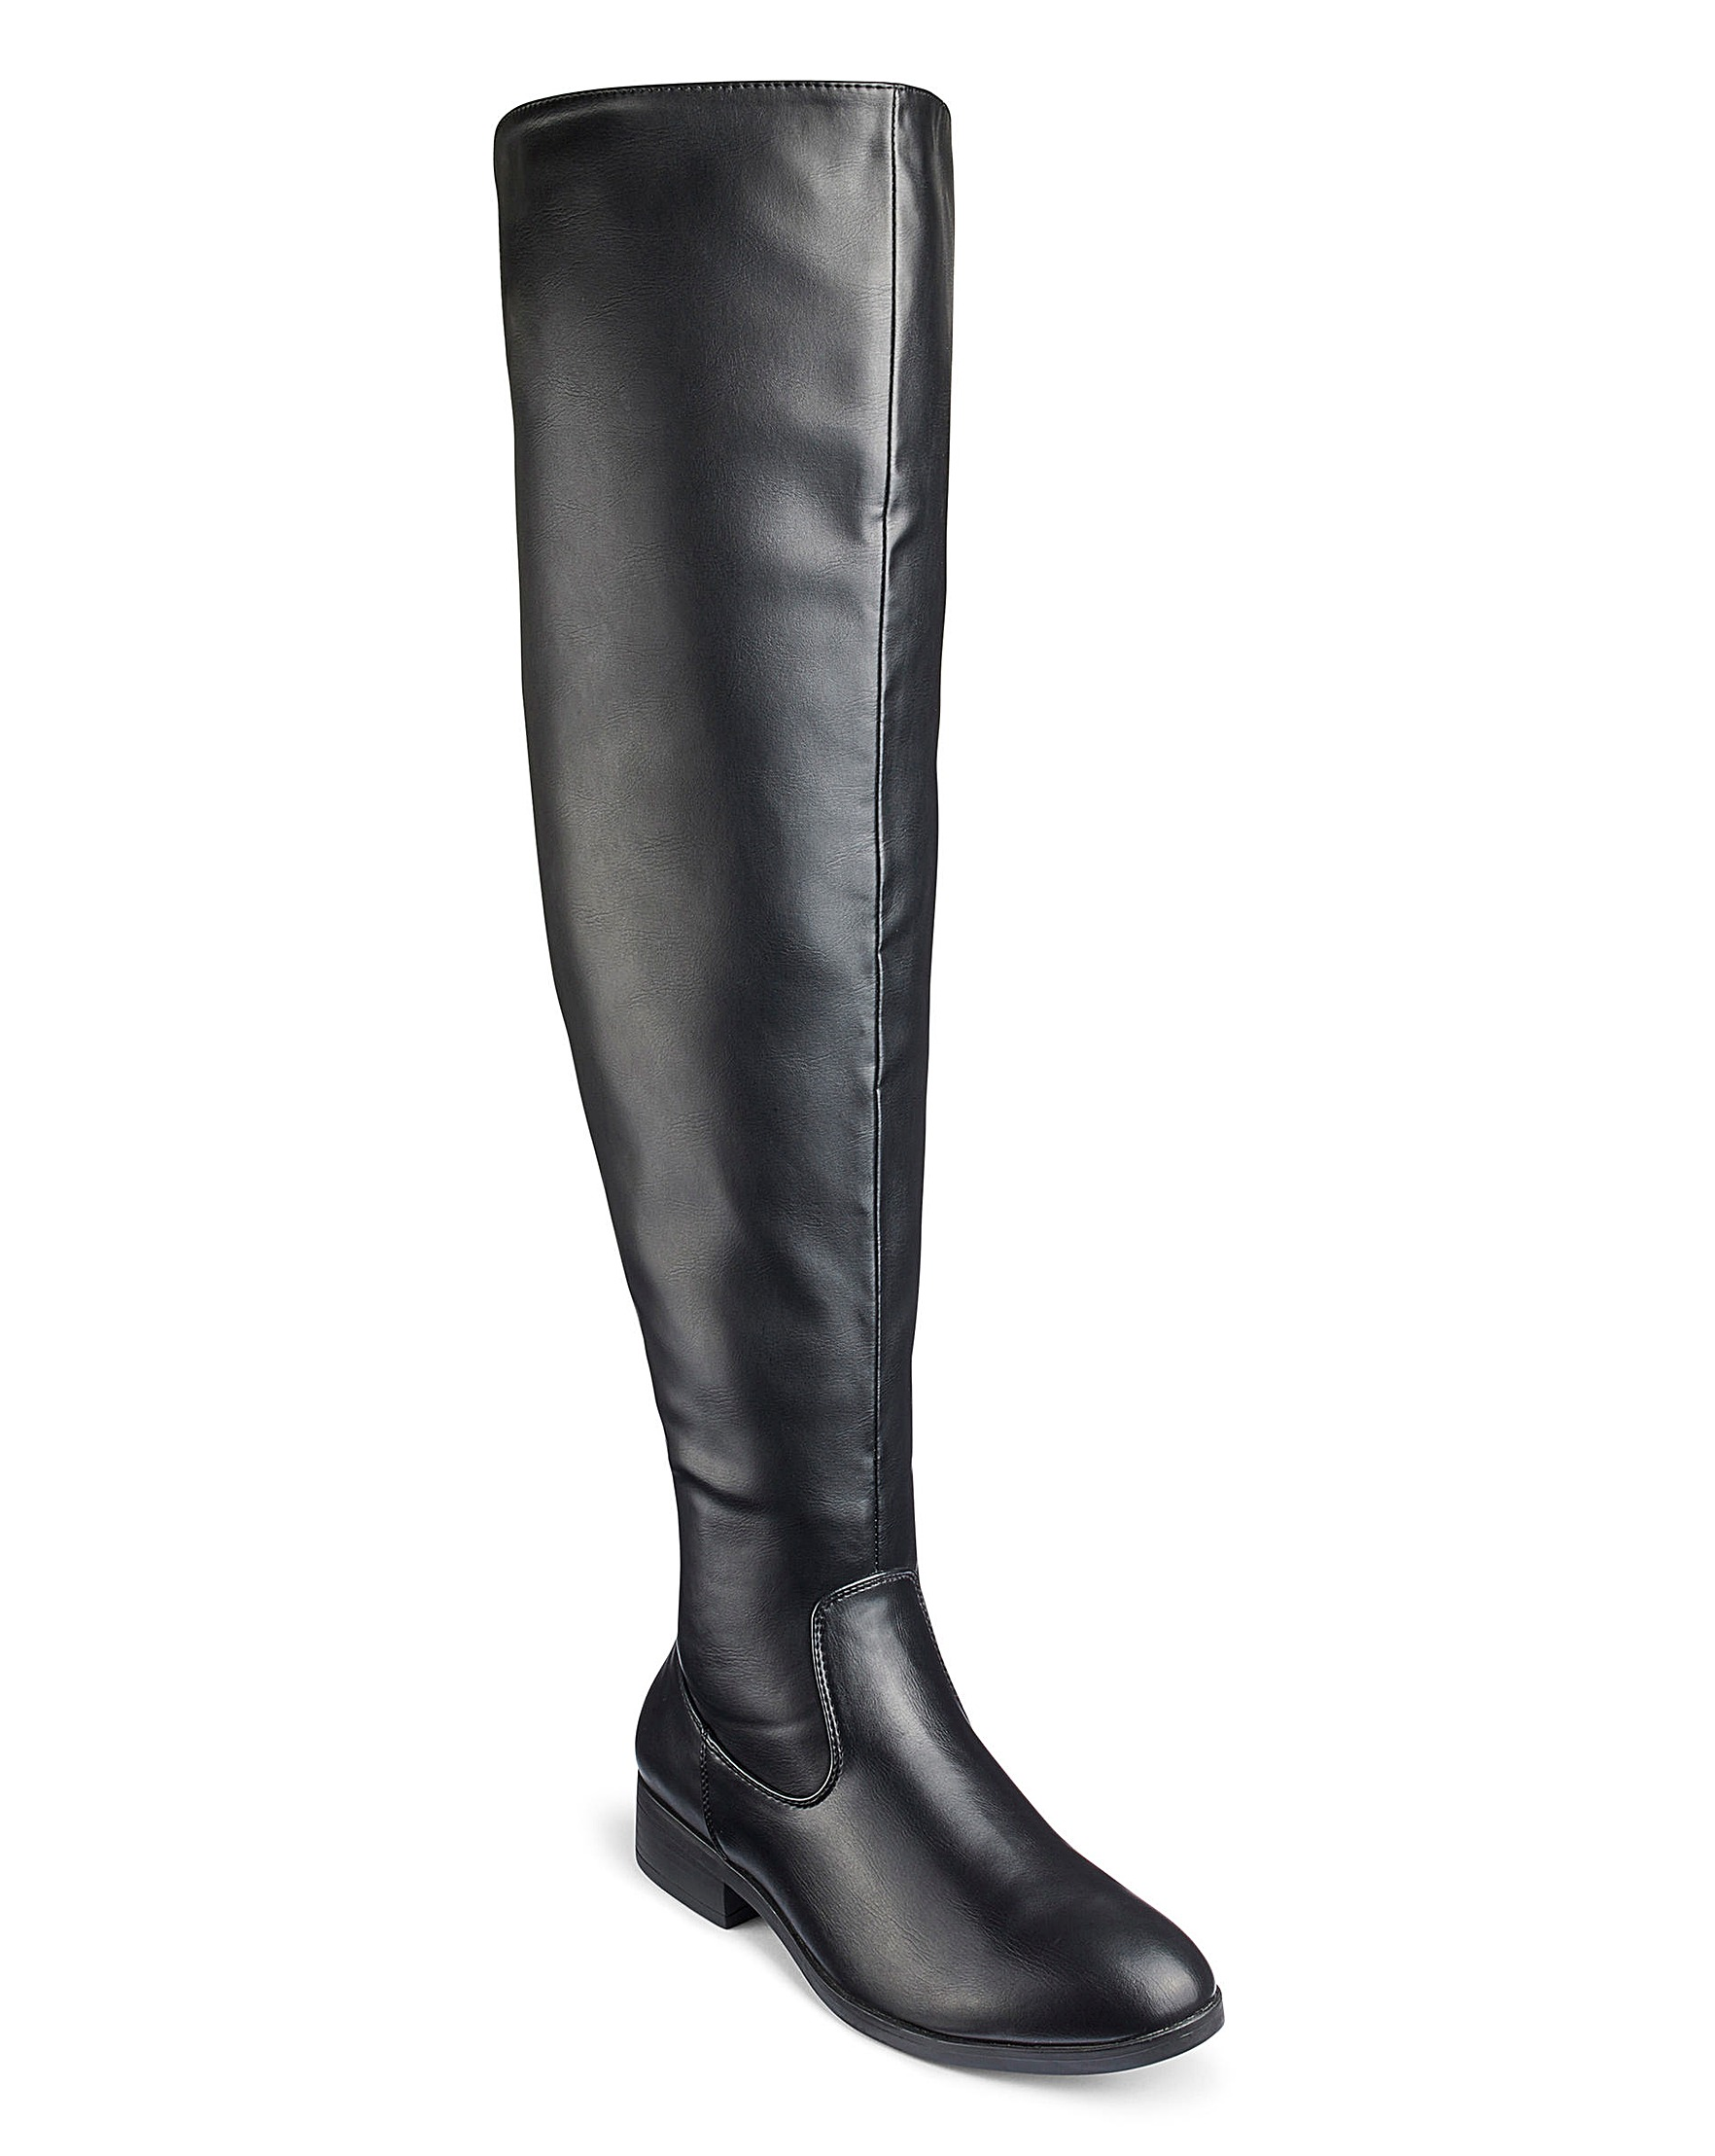 760a10c8e47 Ivy Over The Knee Boots Super Curvy Calf Wide E Fit